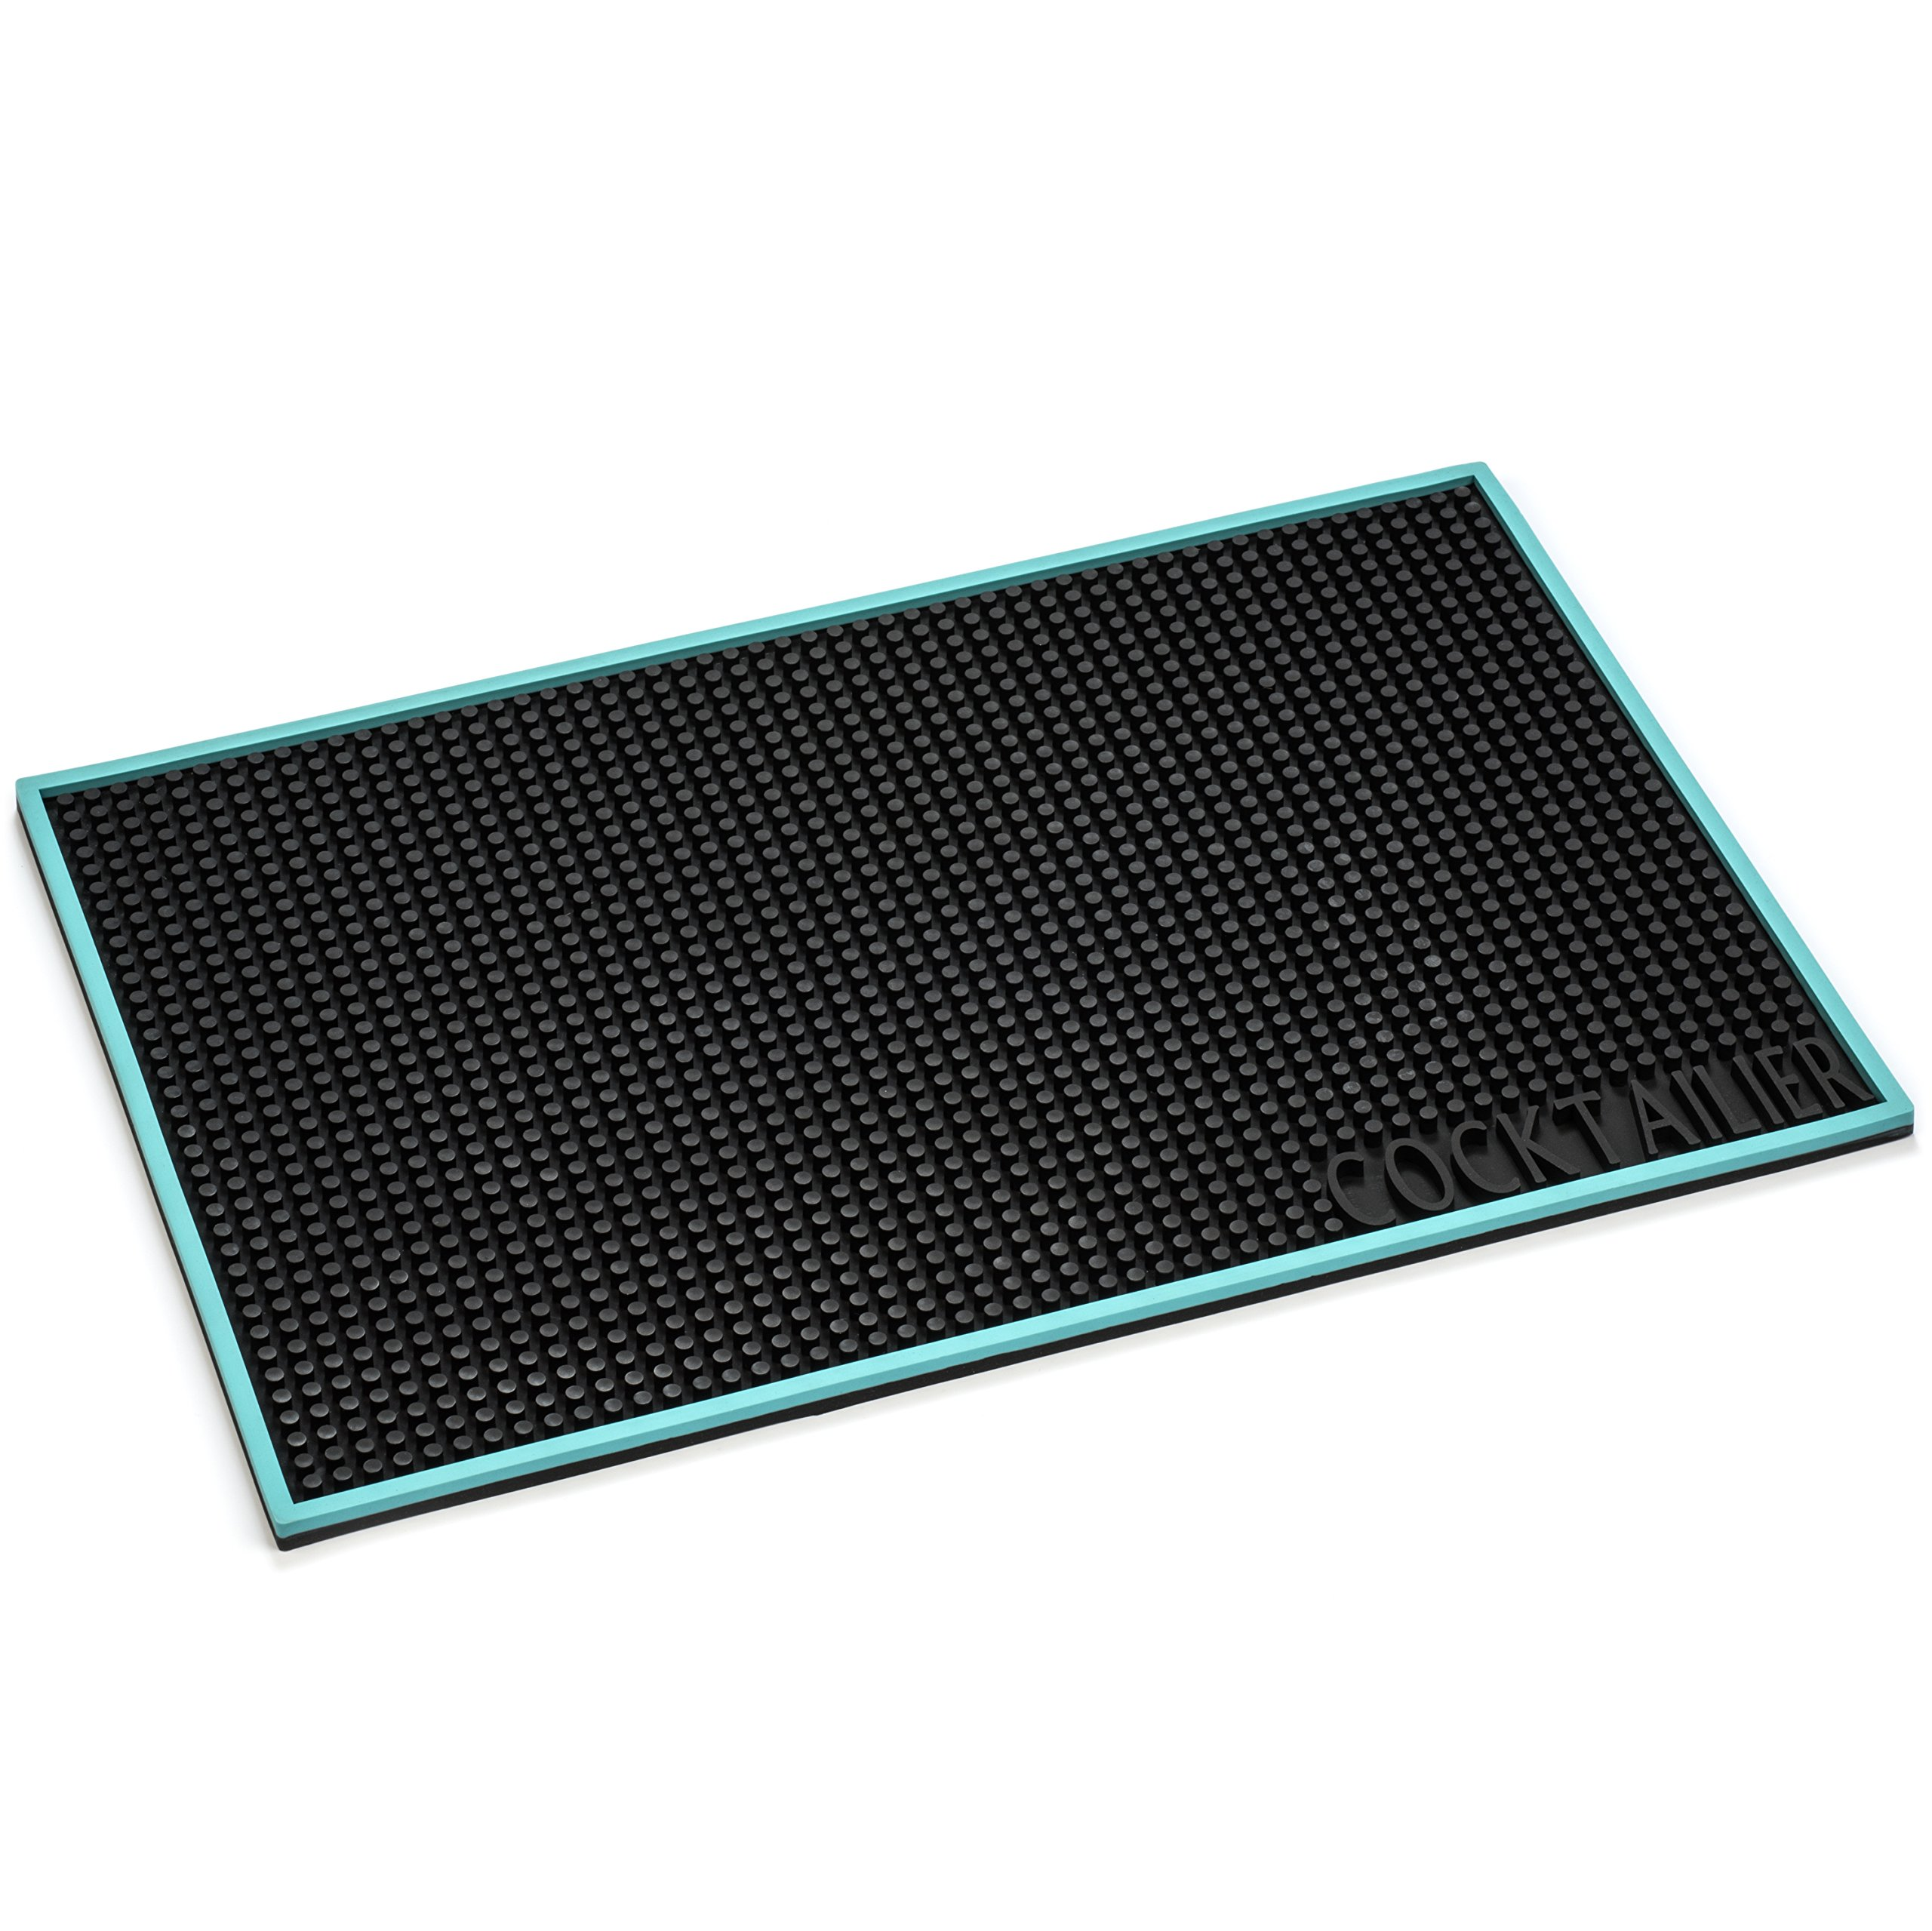 Cocktailier Professional Heat Resistant Rubber Non Slip Bar Mat, 18 x 12 inch, LIMITED EDITION with Turquoise Trim